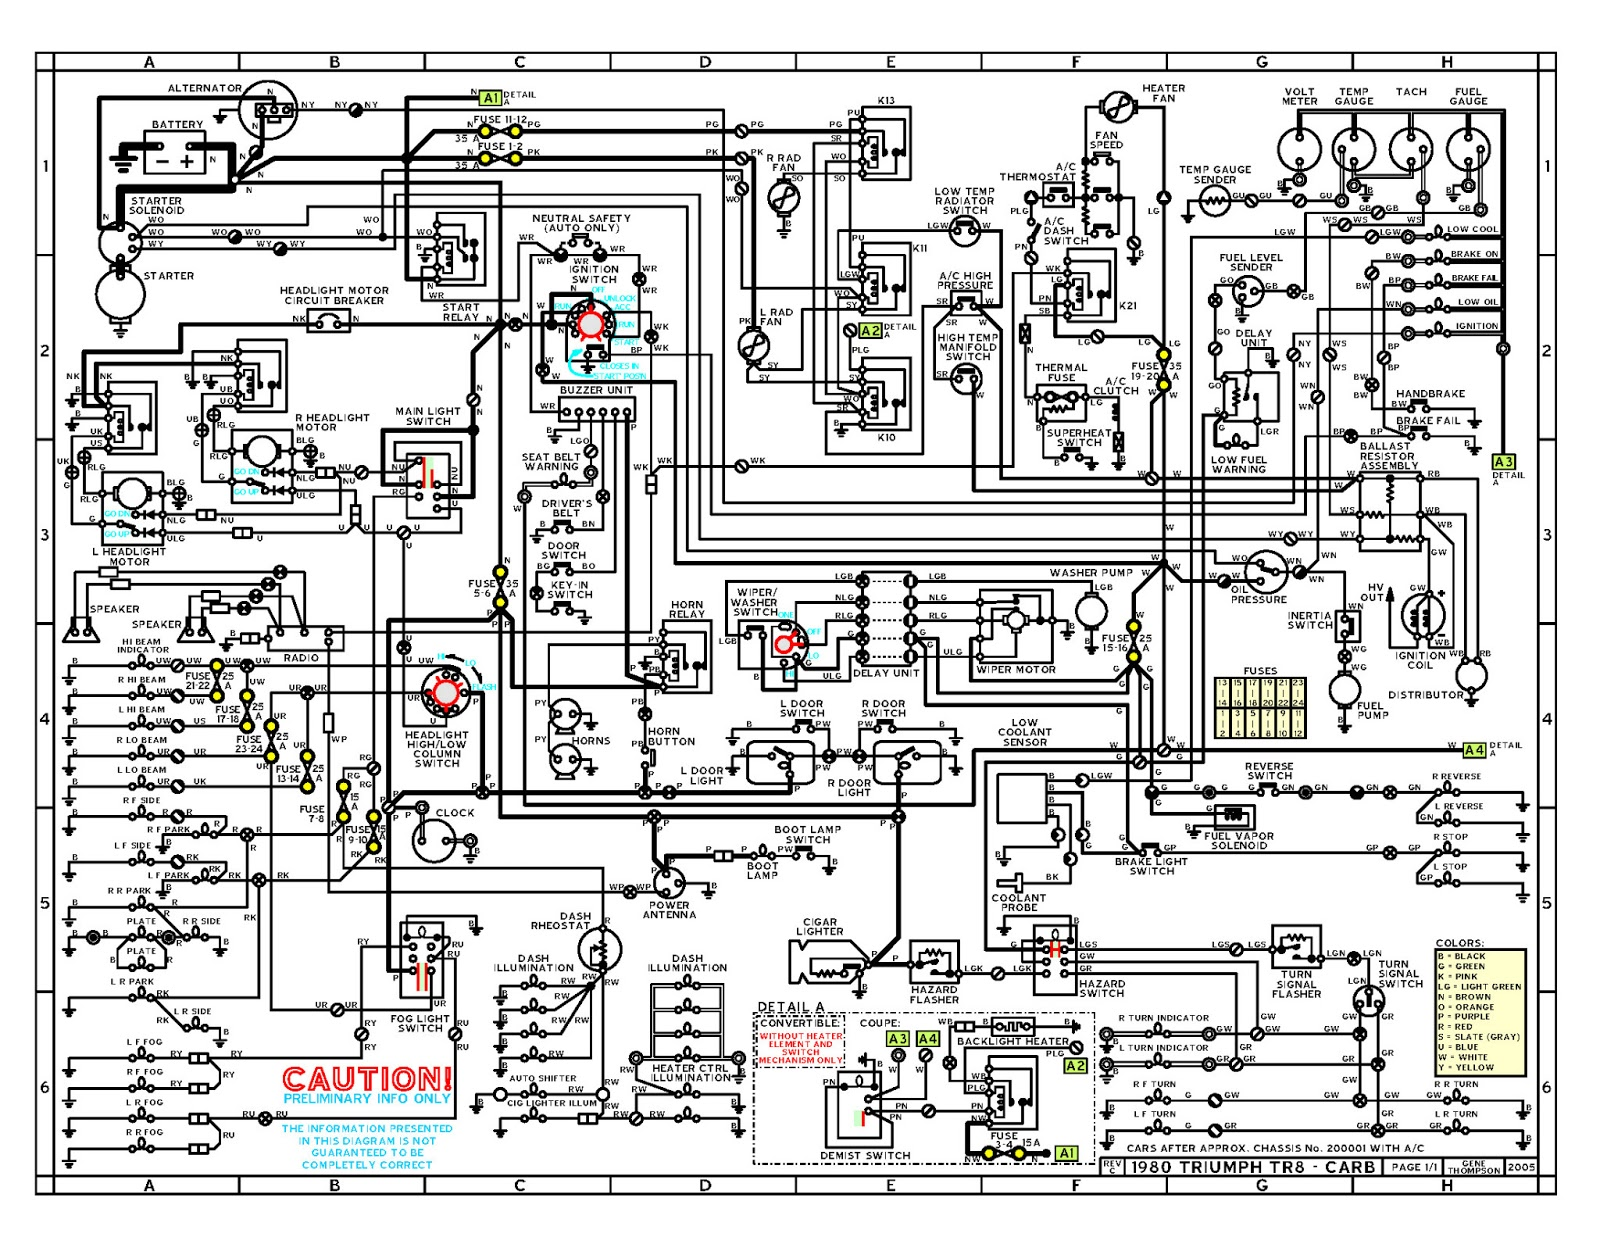 TR8_schematics_Page_2 1980 spitfire wiring diagram triumph tr3 wiring diagram \u2022 wiring  at crackthecode.co